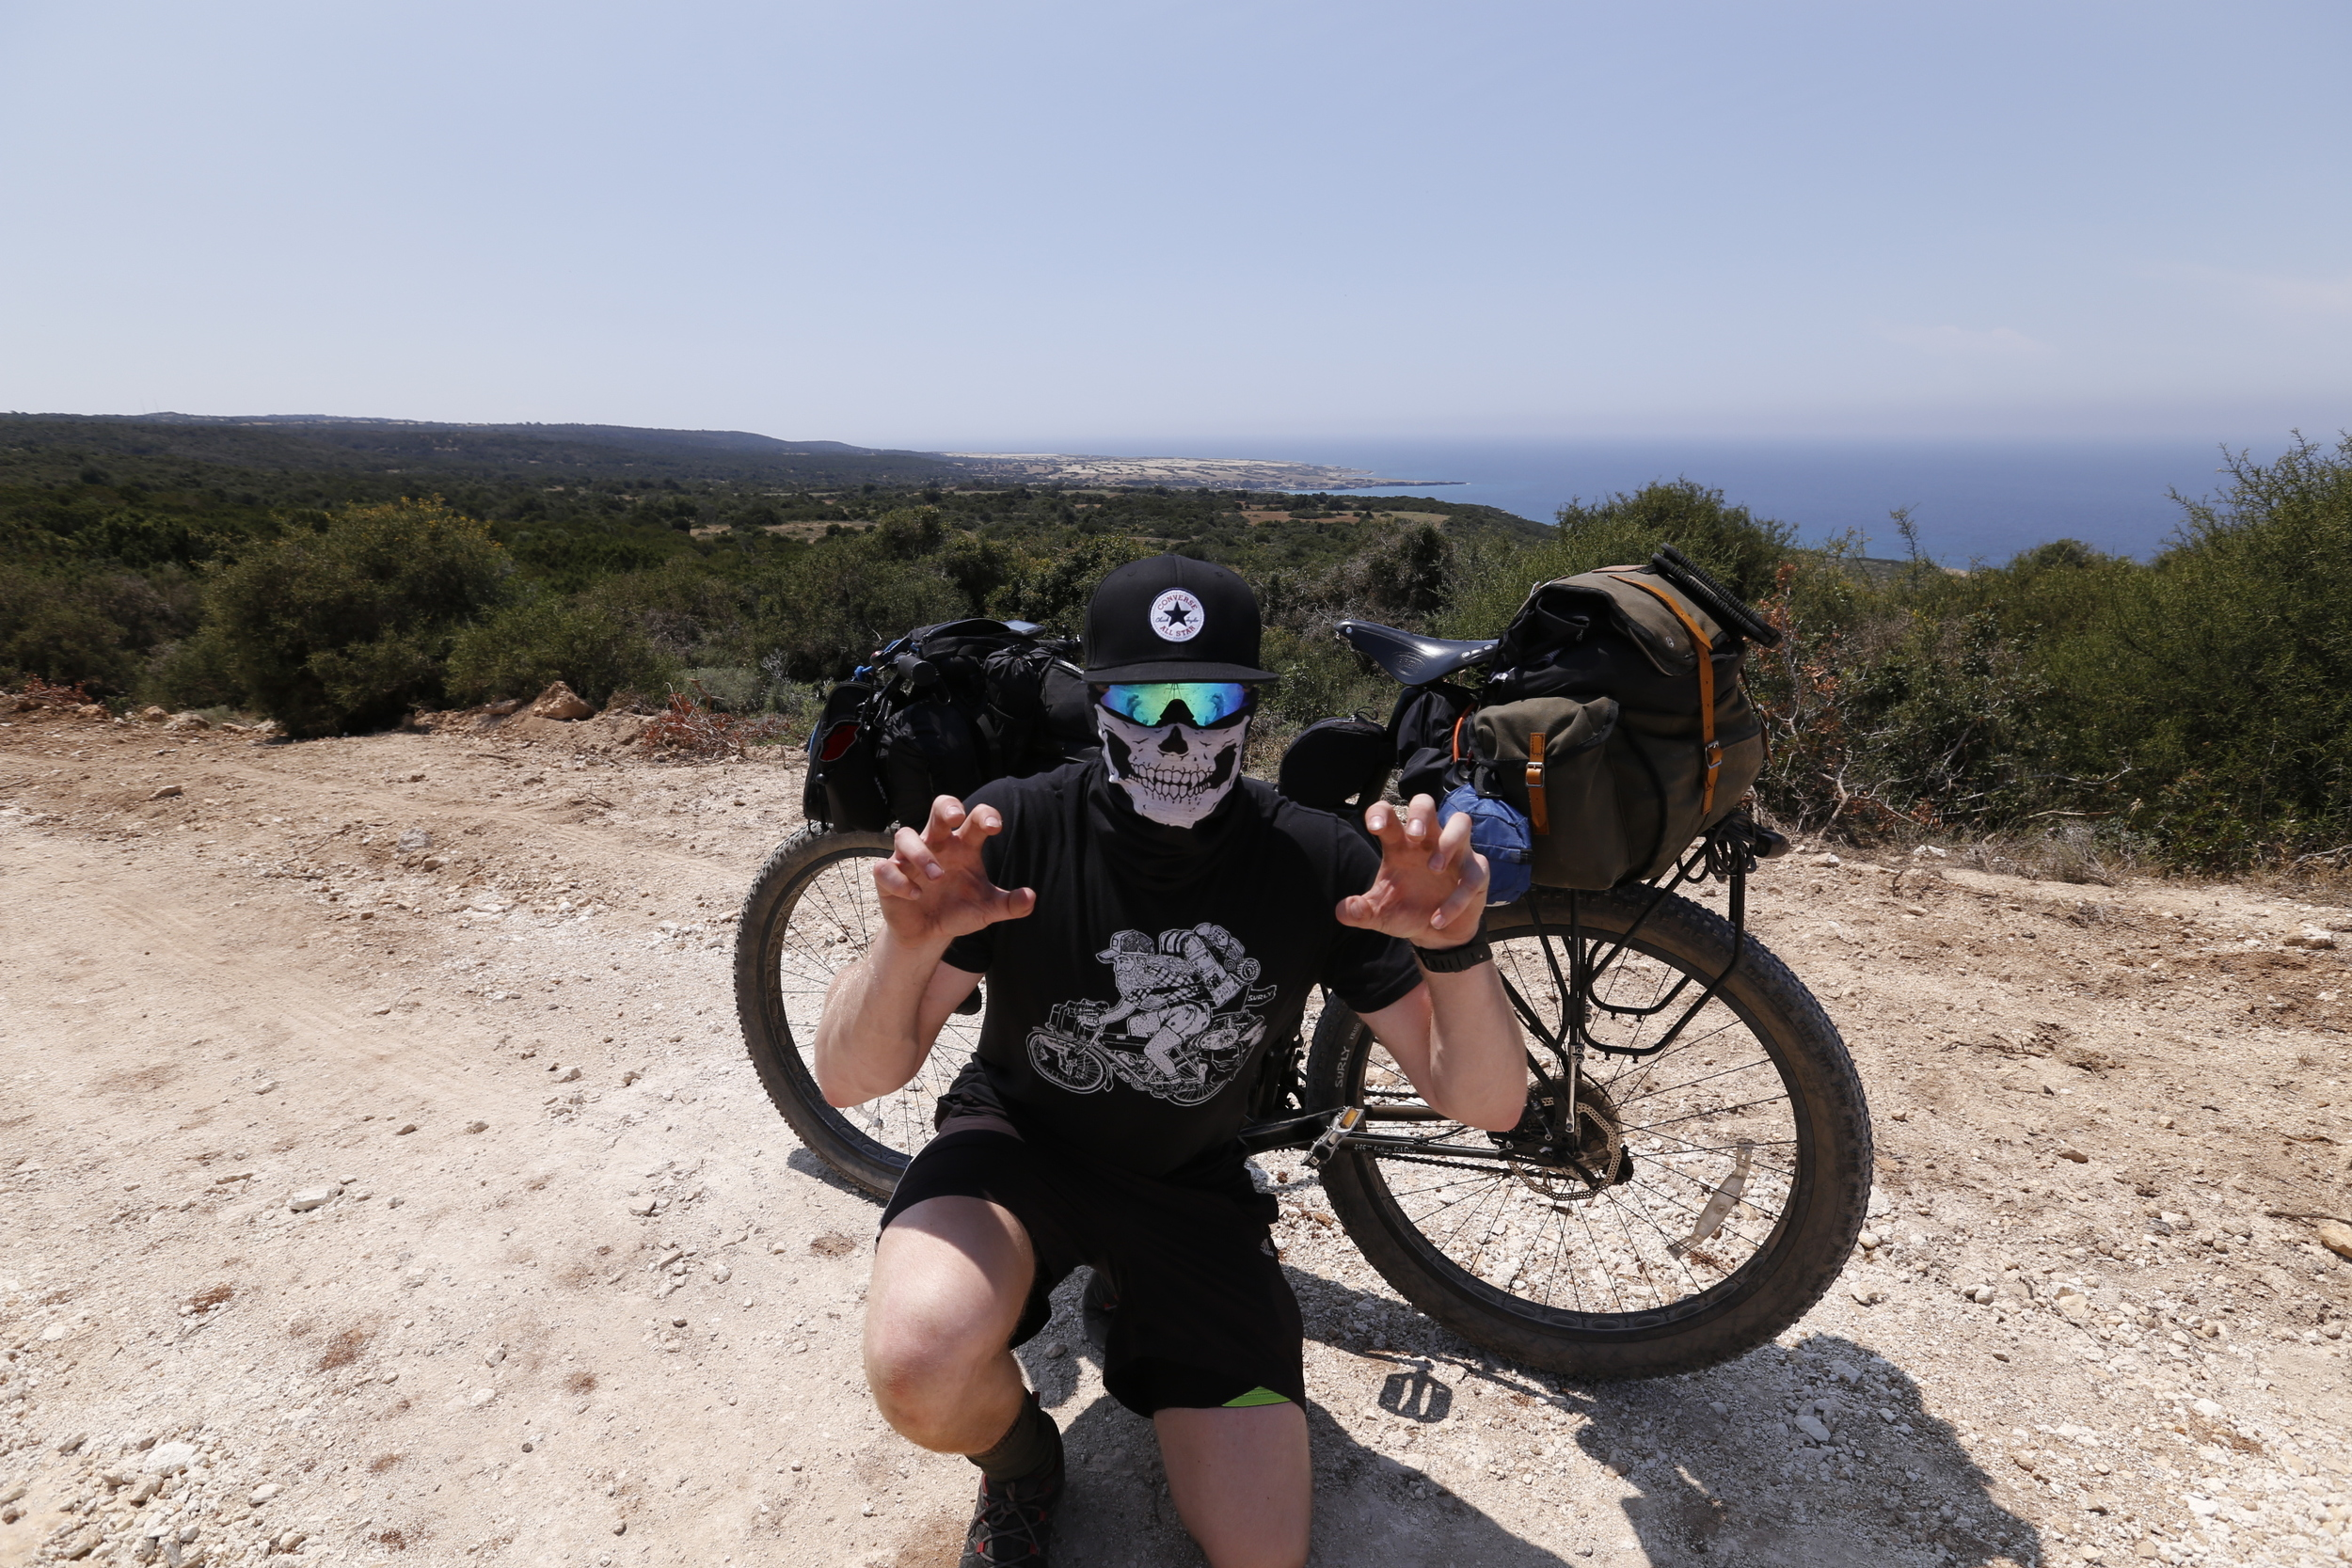 north cyprus, kyrenia mountains, go north cyprus, bicycle touring apocalypse, surly, surly ecr, bicycle touring, cycling, jack macgowan, apocaloon, adventure, wildcat gear, revelate designs, brooks saddle, trangia, knards, fat bike, kyrenia mountain trail, canon, canon 6d, canon photography, bikepacking blog, bikepacker, cyclist, bicycle touring apocalypse, jack macgowan, sponsored athlete, sponsored cyclist, explorer